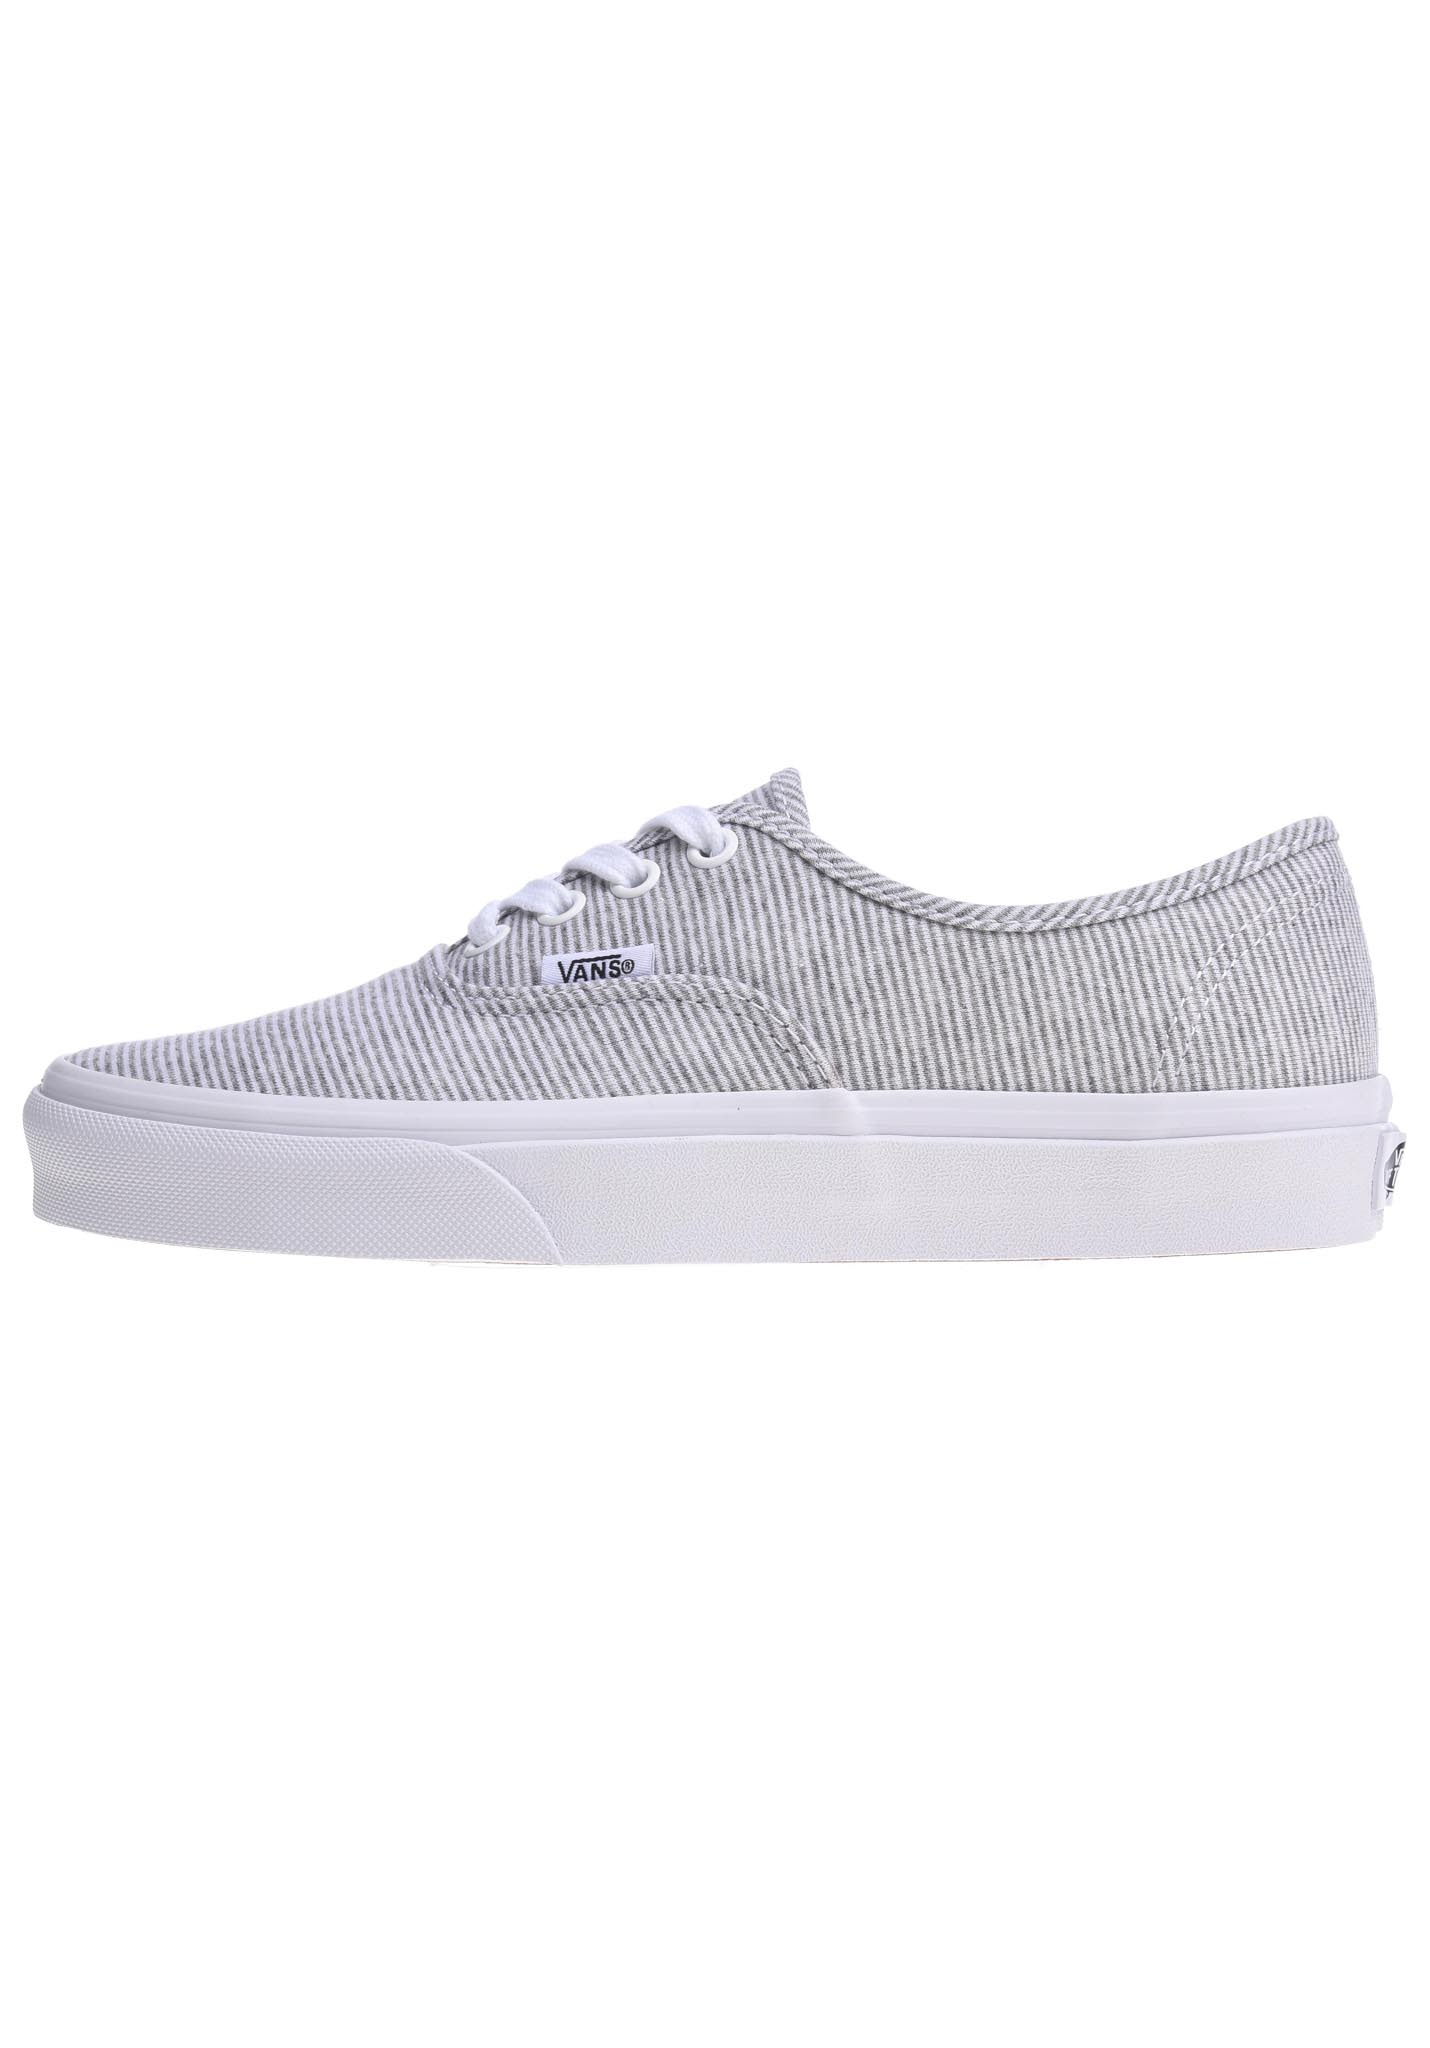 Vans Authentic - Baskets pour Femme - Gris